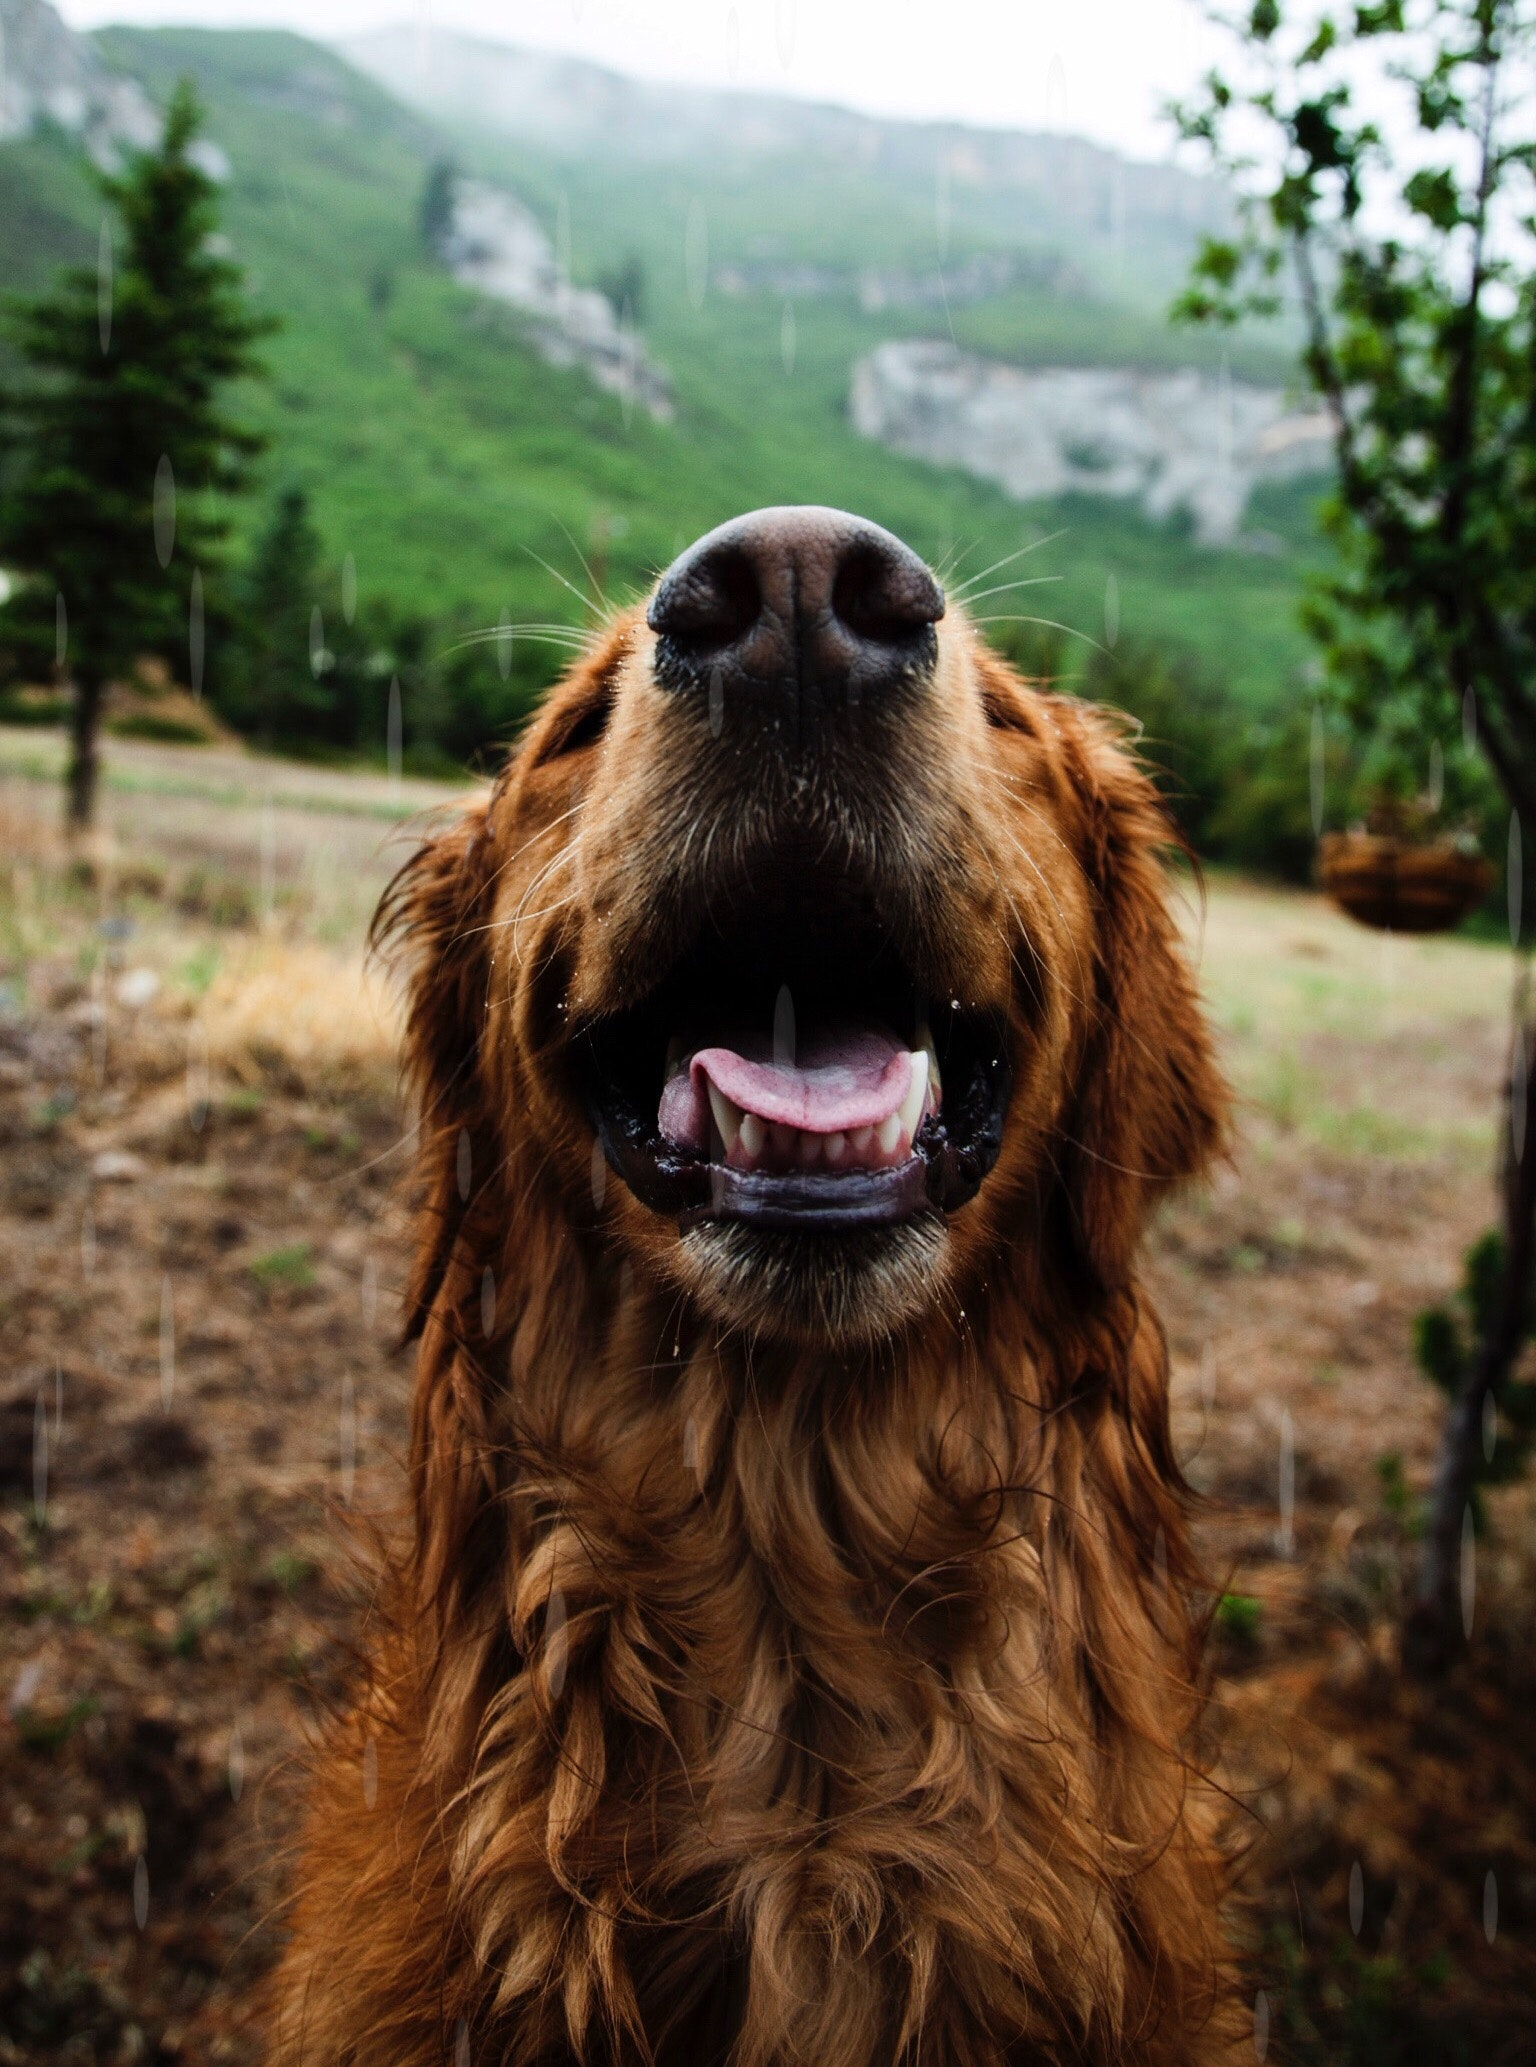 Positive Reinforcement helps a dog to feel happy, secure and settled in life. Dog training which uses this is most ethical